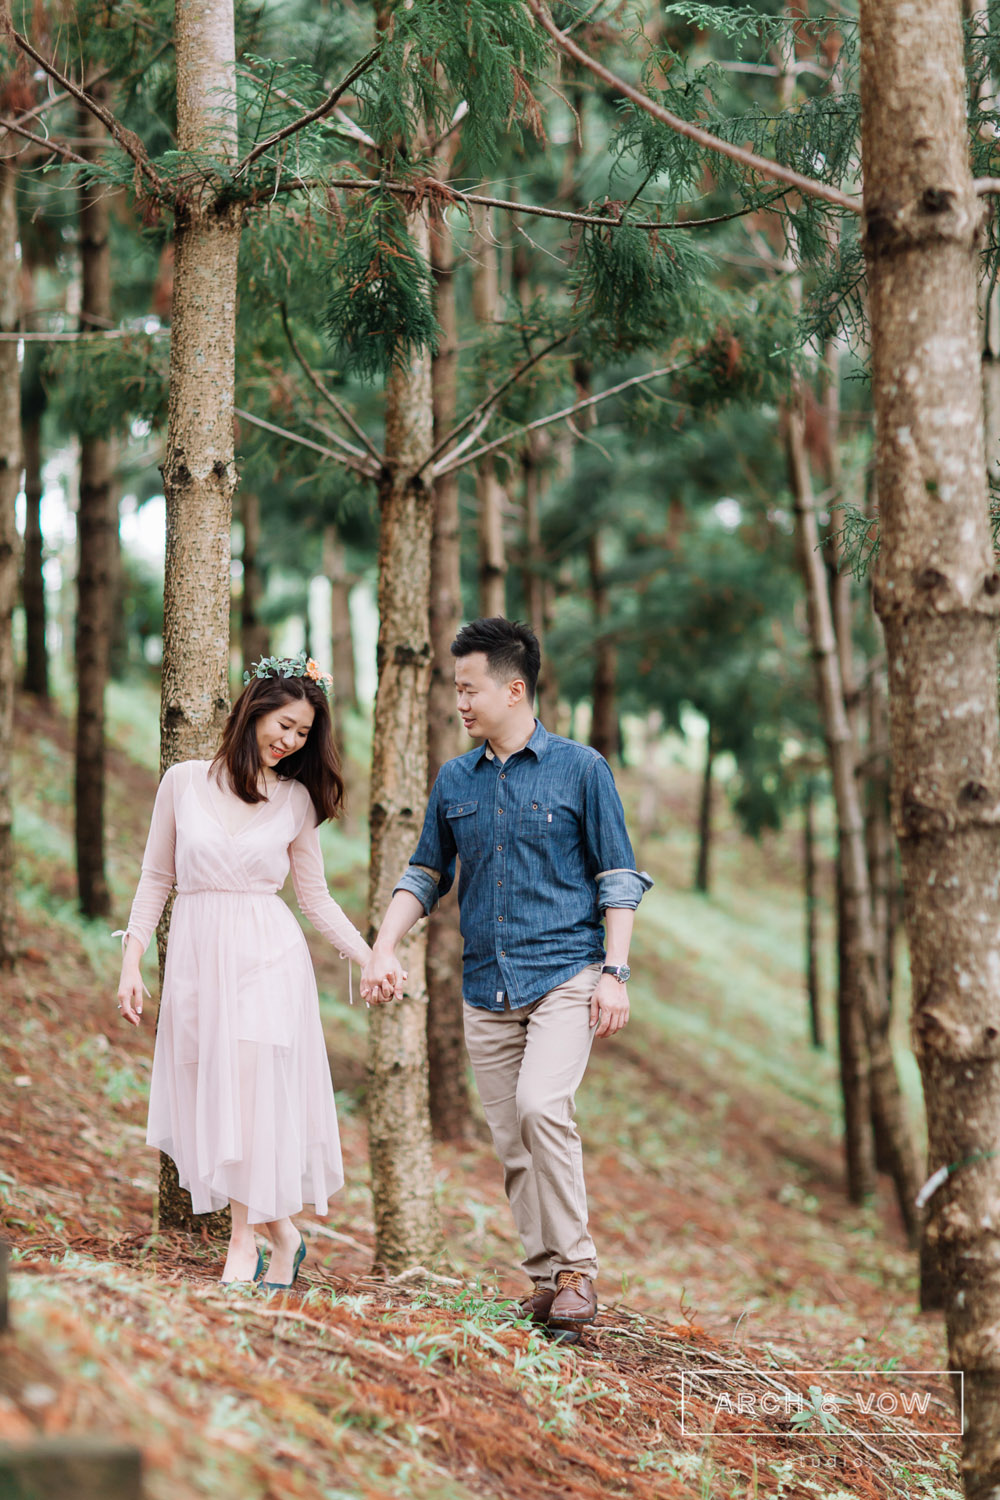 KC & Elly Prewed watermark-134.jpg